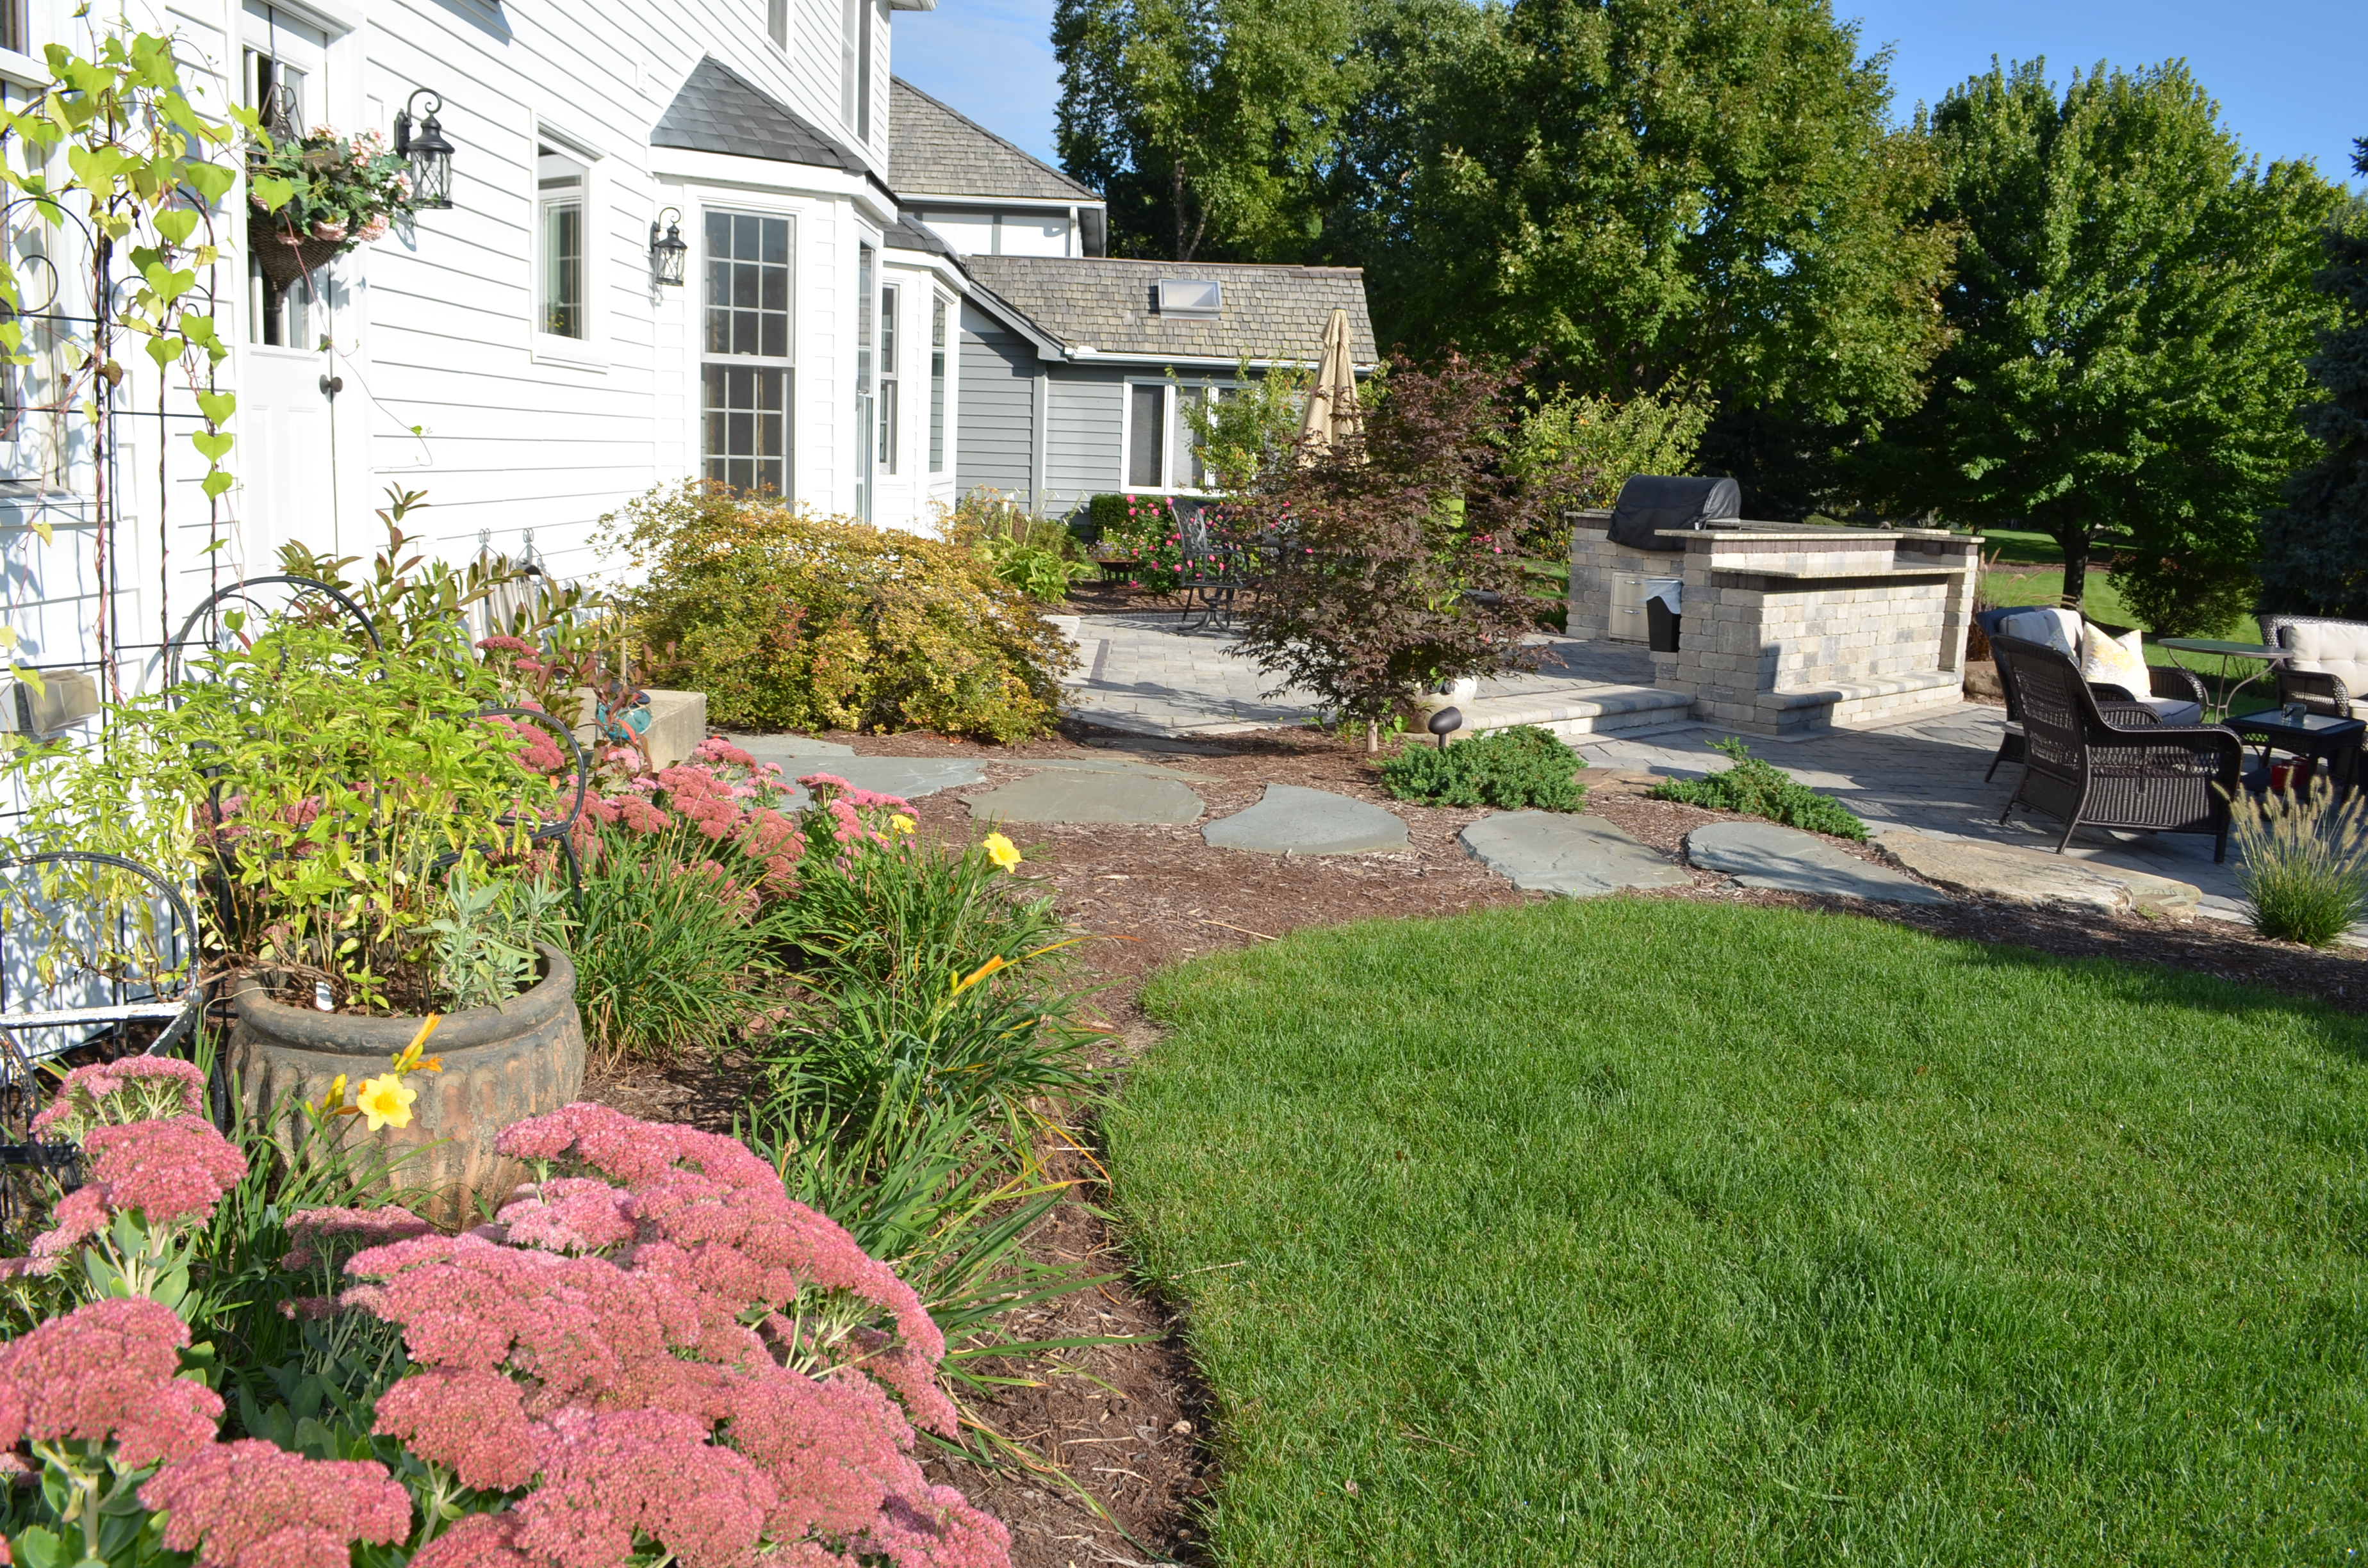 backyard landscaping tips simple tips for low maintenance backyard landscaping. Black Bedroom Furniture Sets. Home Design Ideas